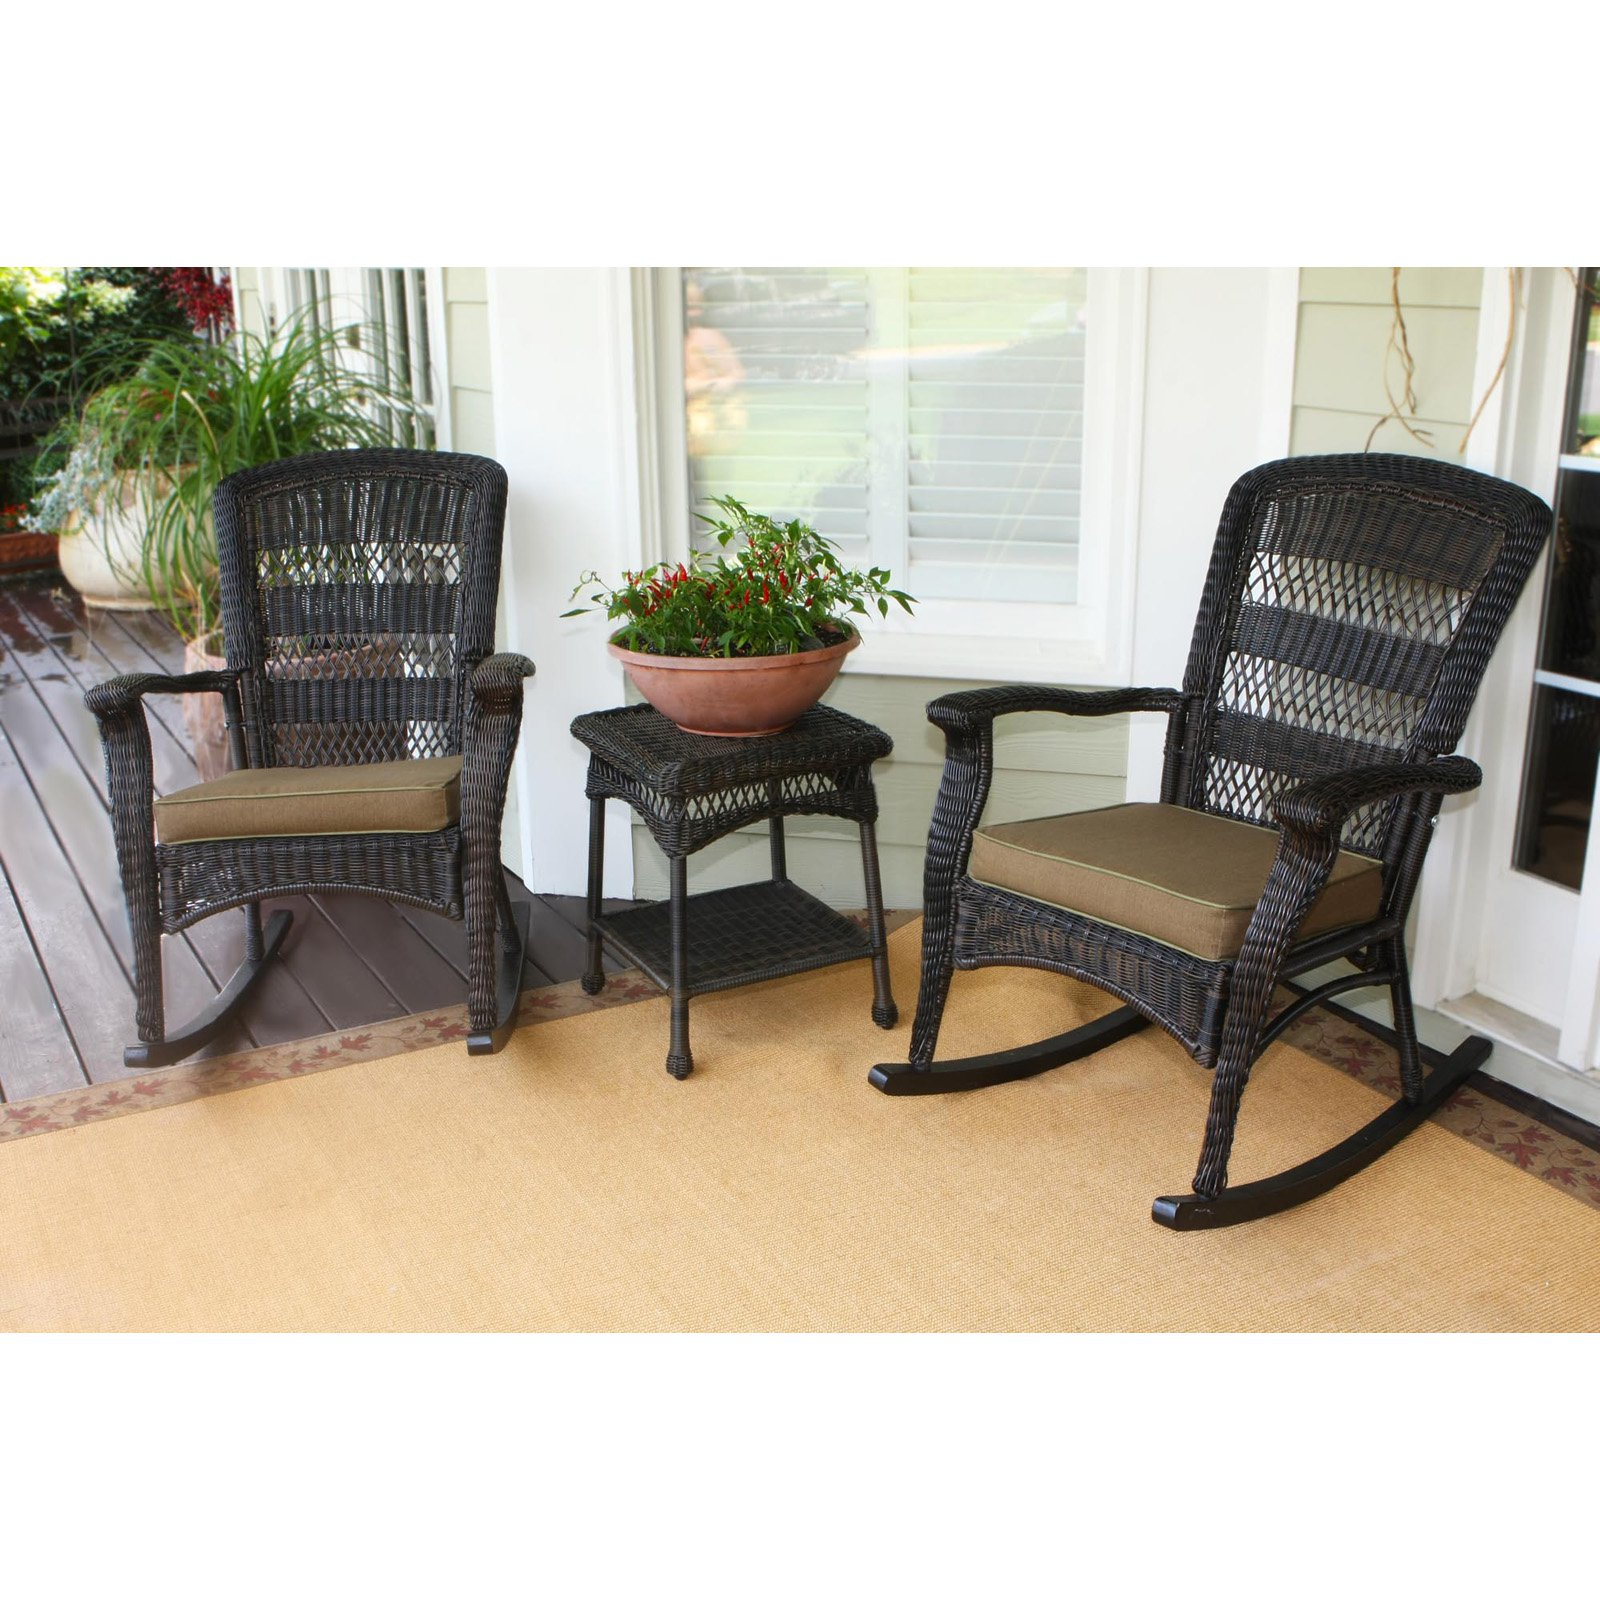 Tortuga Outdoor Portside Plantation 3 pc. Rocker Set